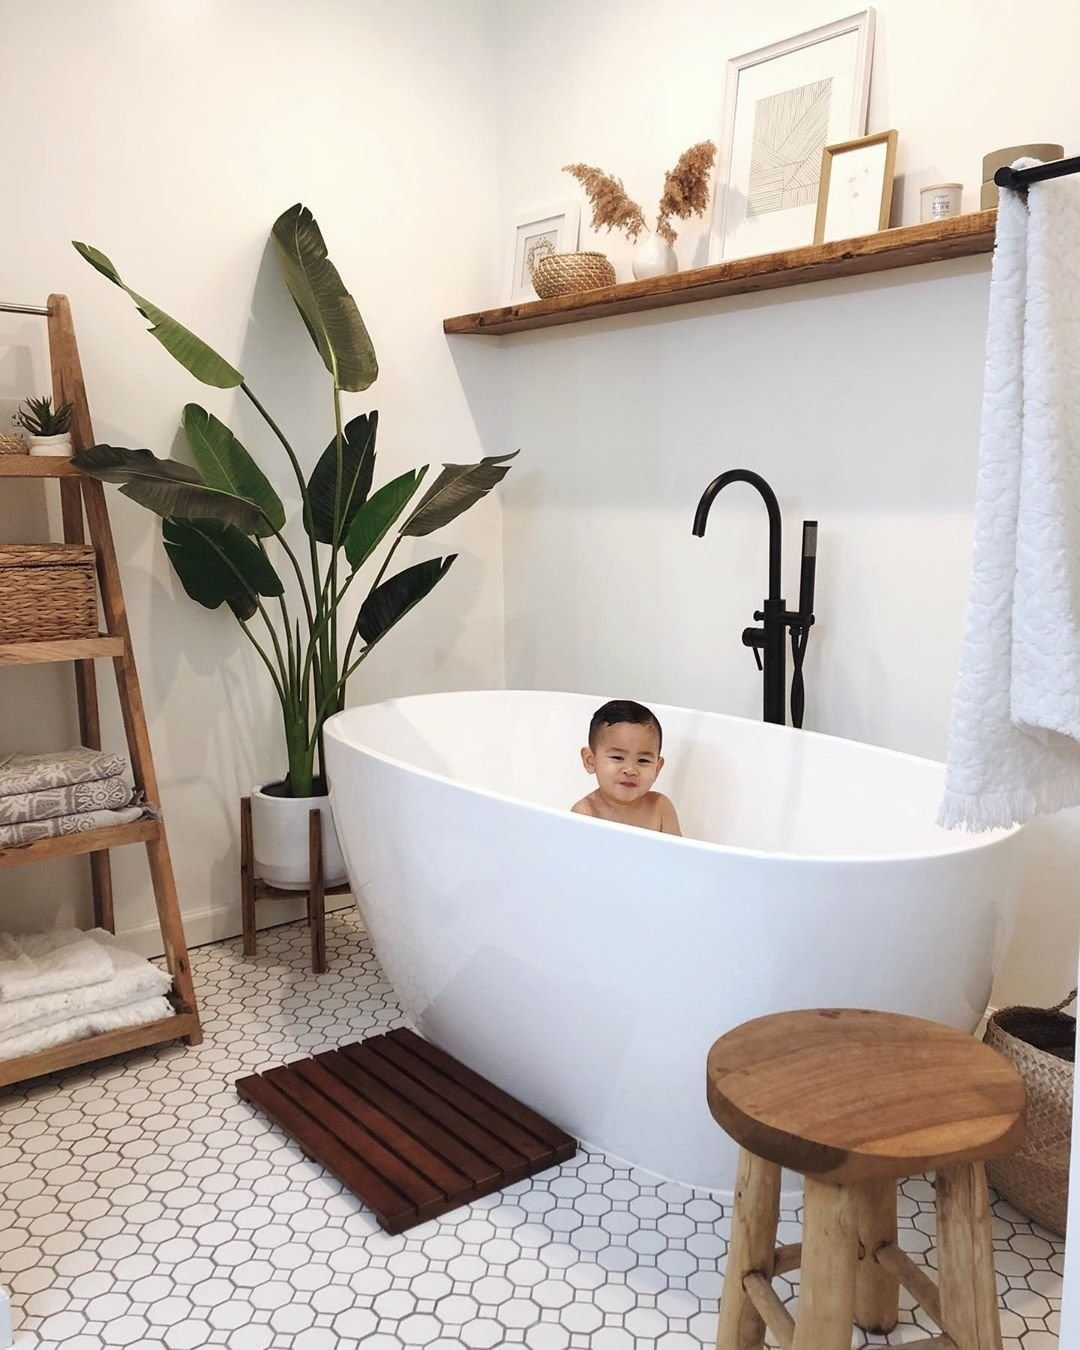 "Isabella Oliver on Instagram: ""The cutest baba in the most beautiful bathroom 📷: @houseoftran  #isabellaolivermama #isabellaoliver #bathtime #bathroomdesign #minimaldecor…"""